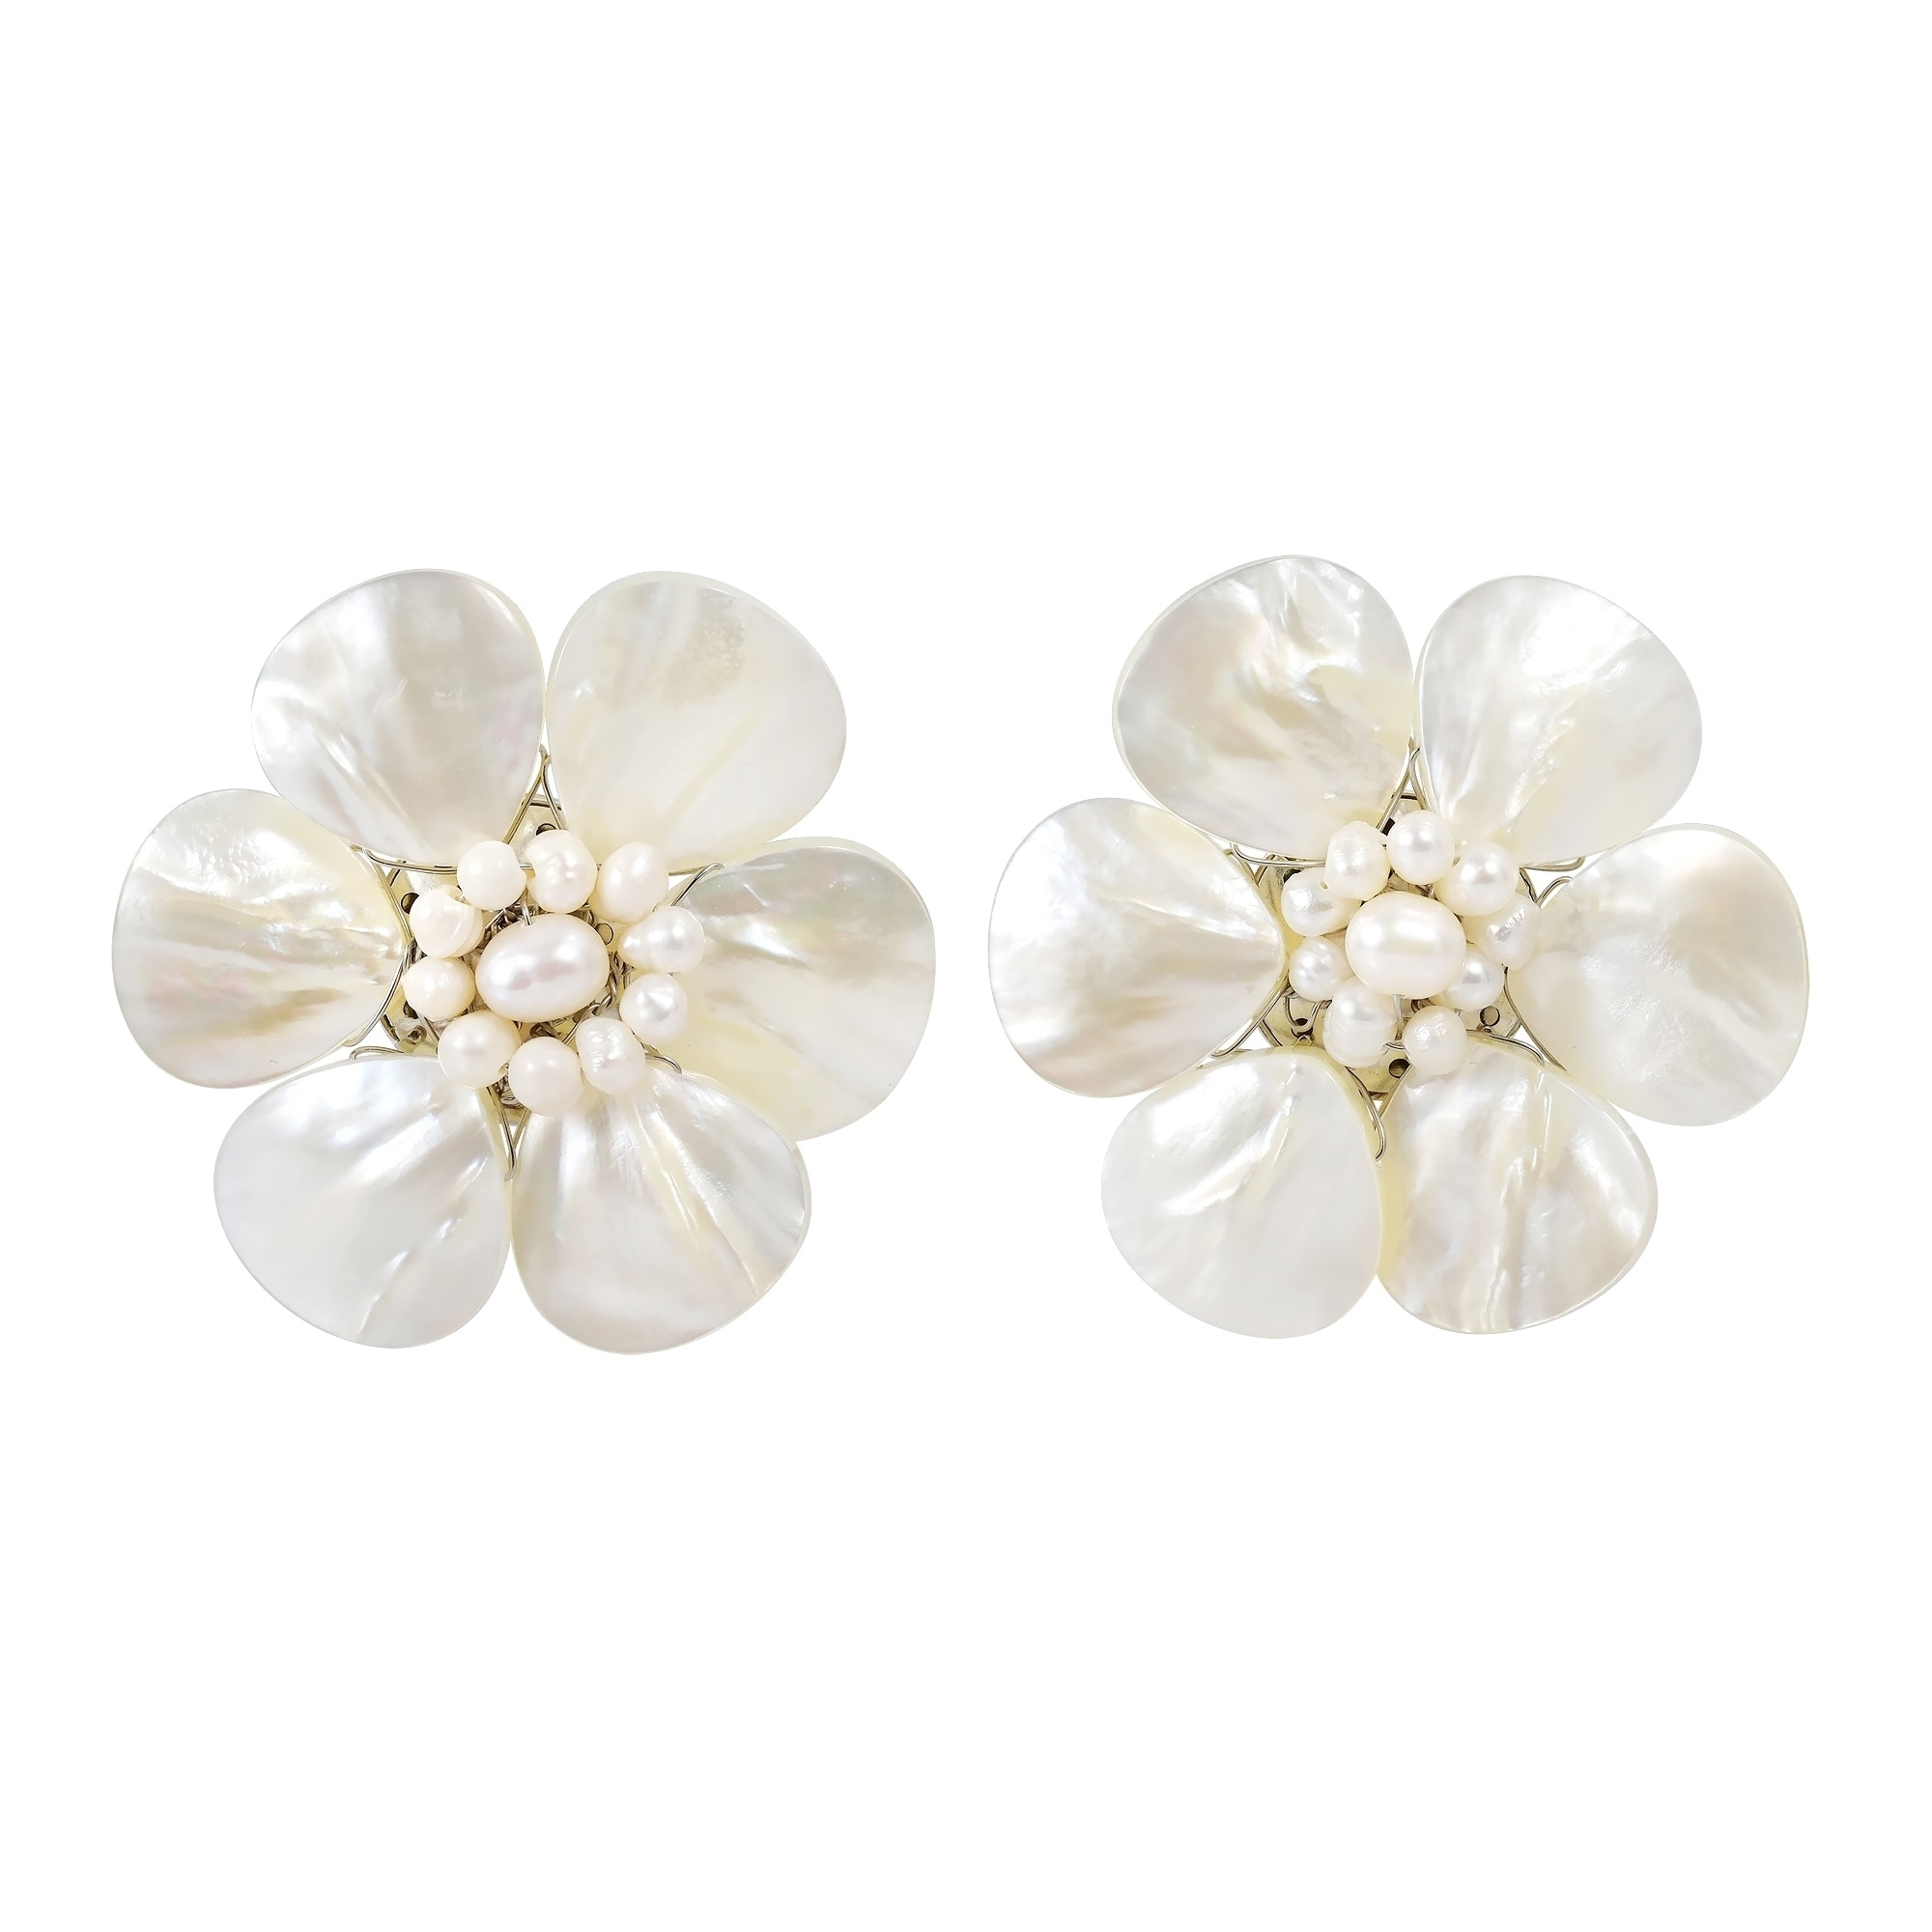 Shop Handmade White Mother Of Pearl Flower Earrings Thailand On